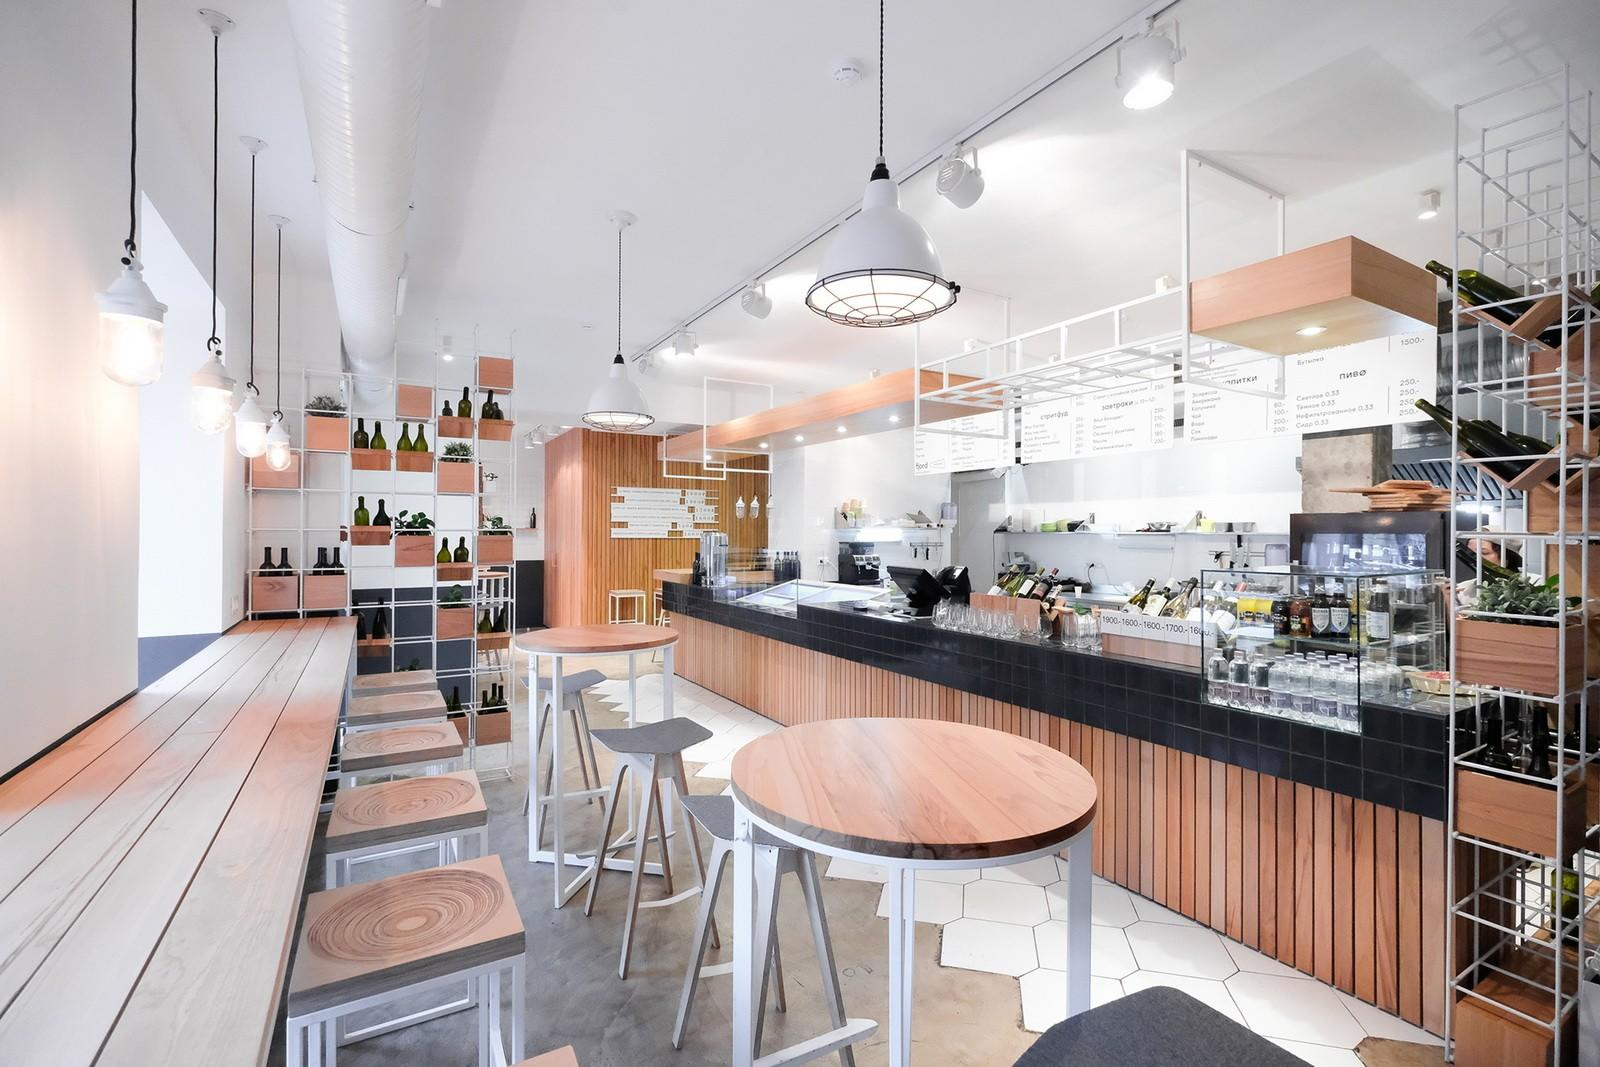 OUYEE modern small cafe design ideas bulk production for furniture-3